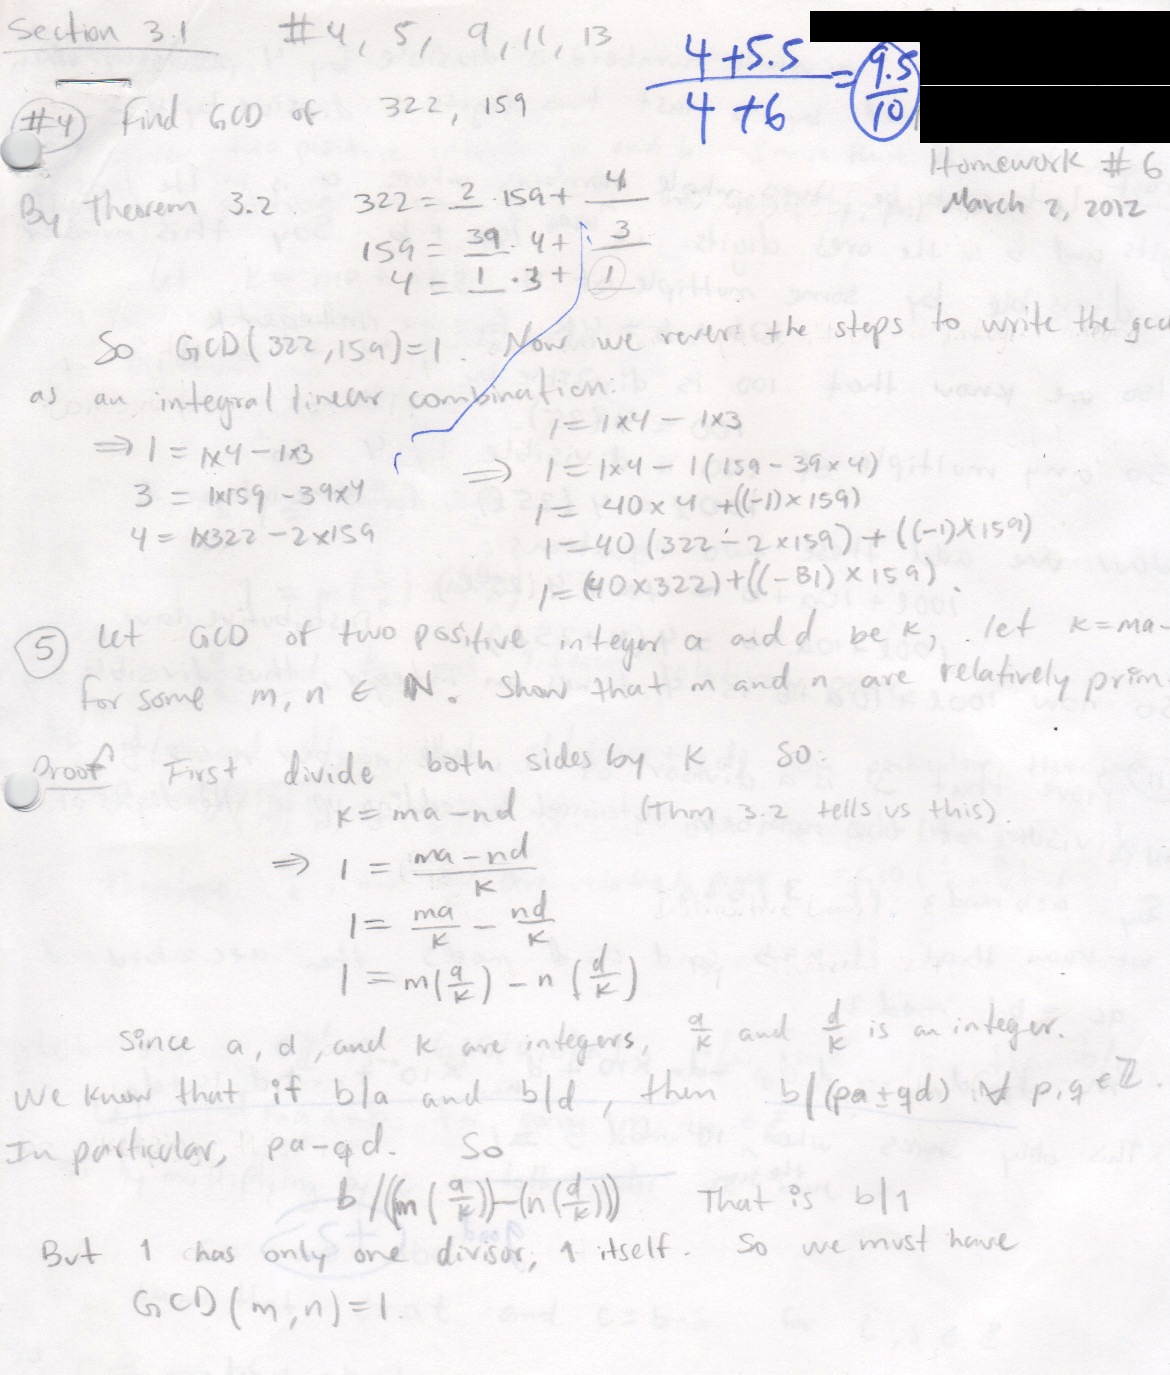 My old math homework from UC Berkeley : Math 151 hw6